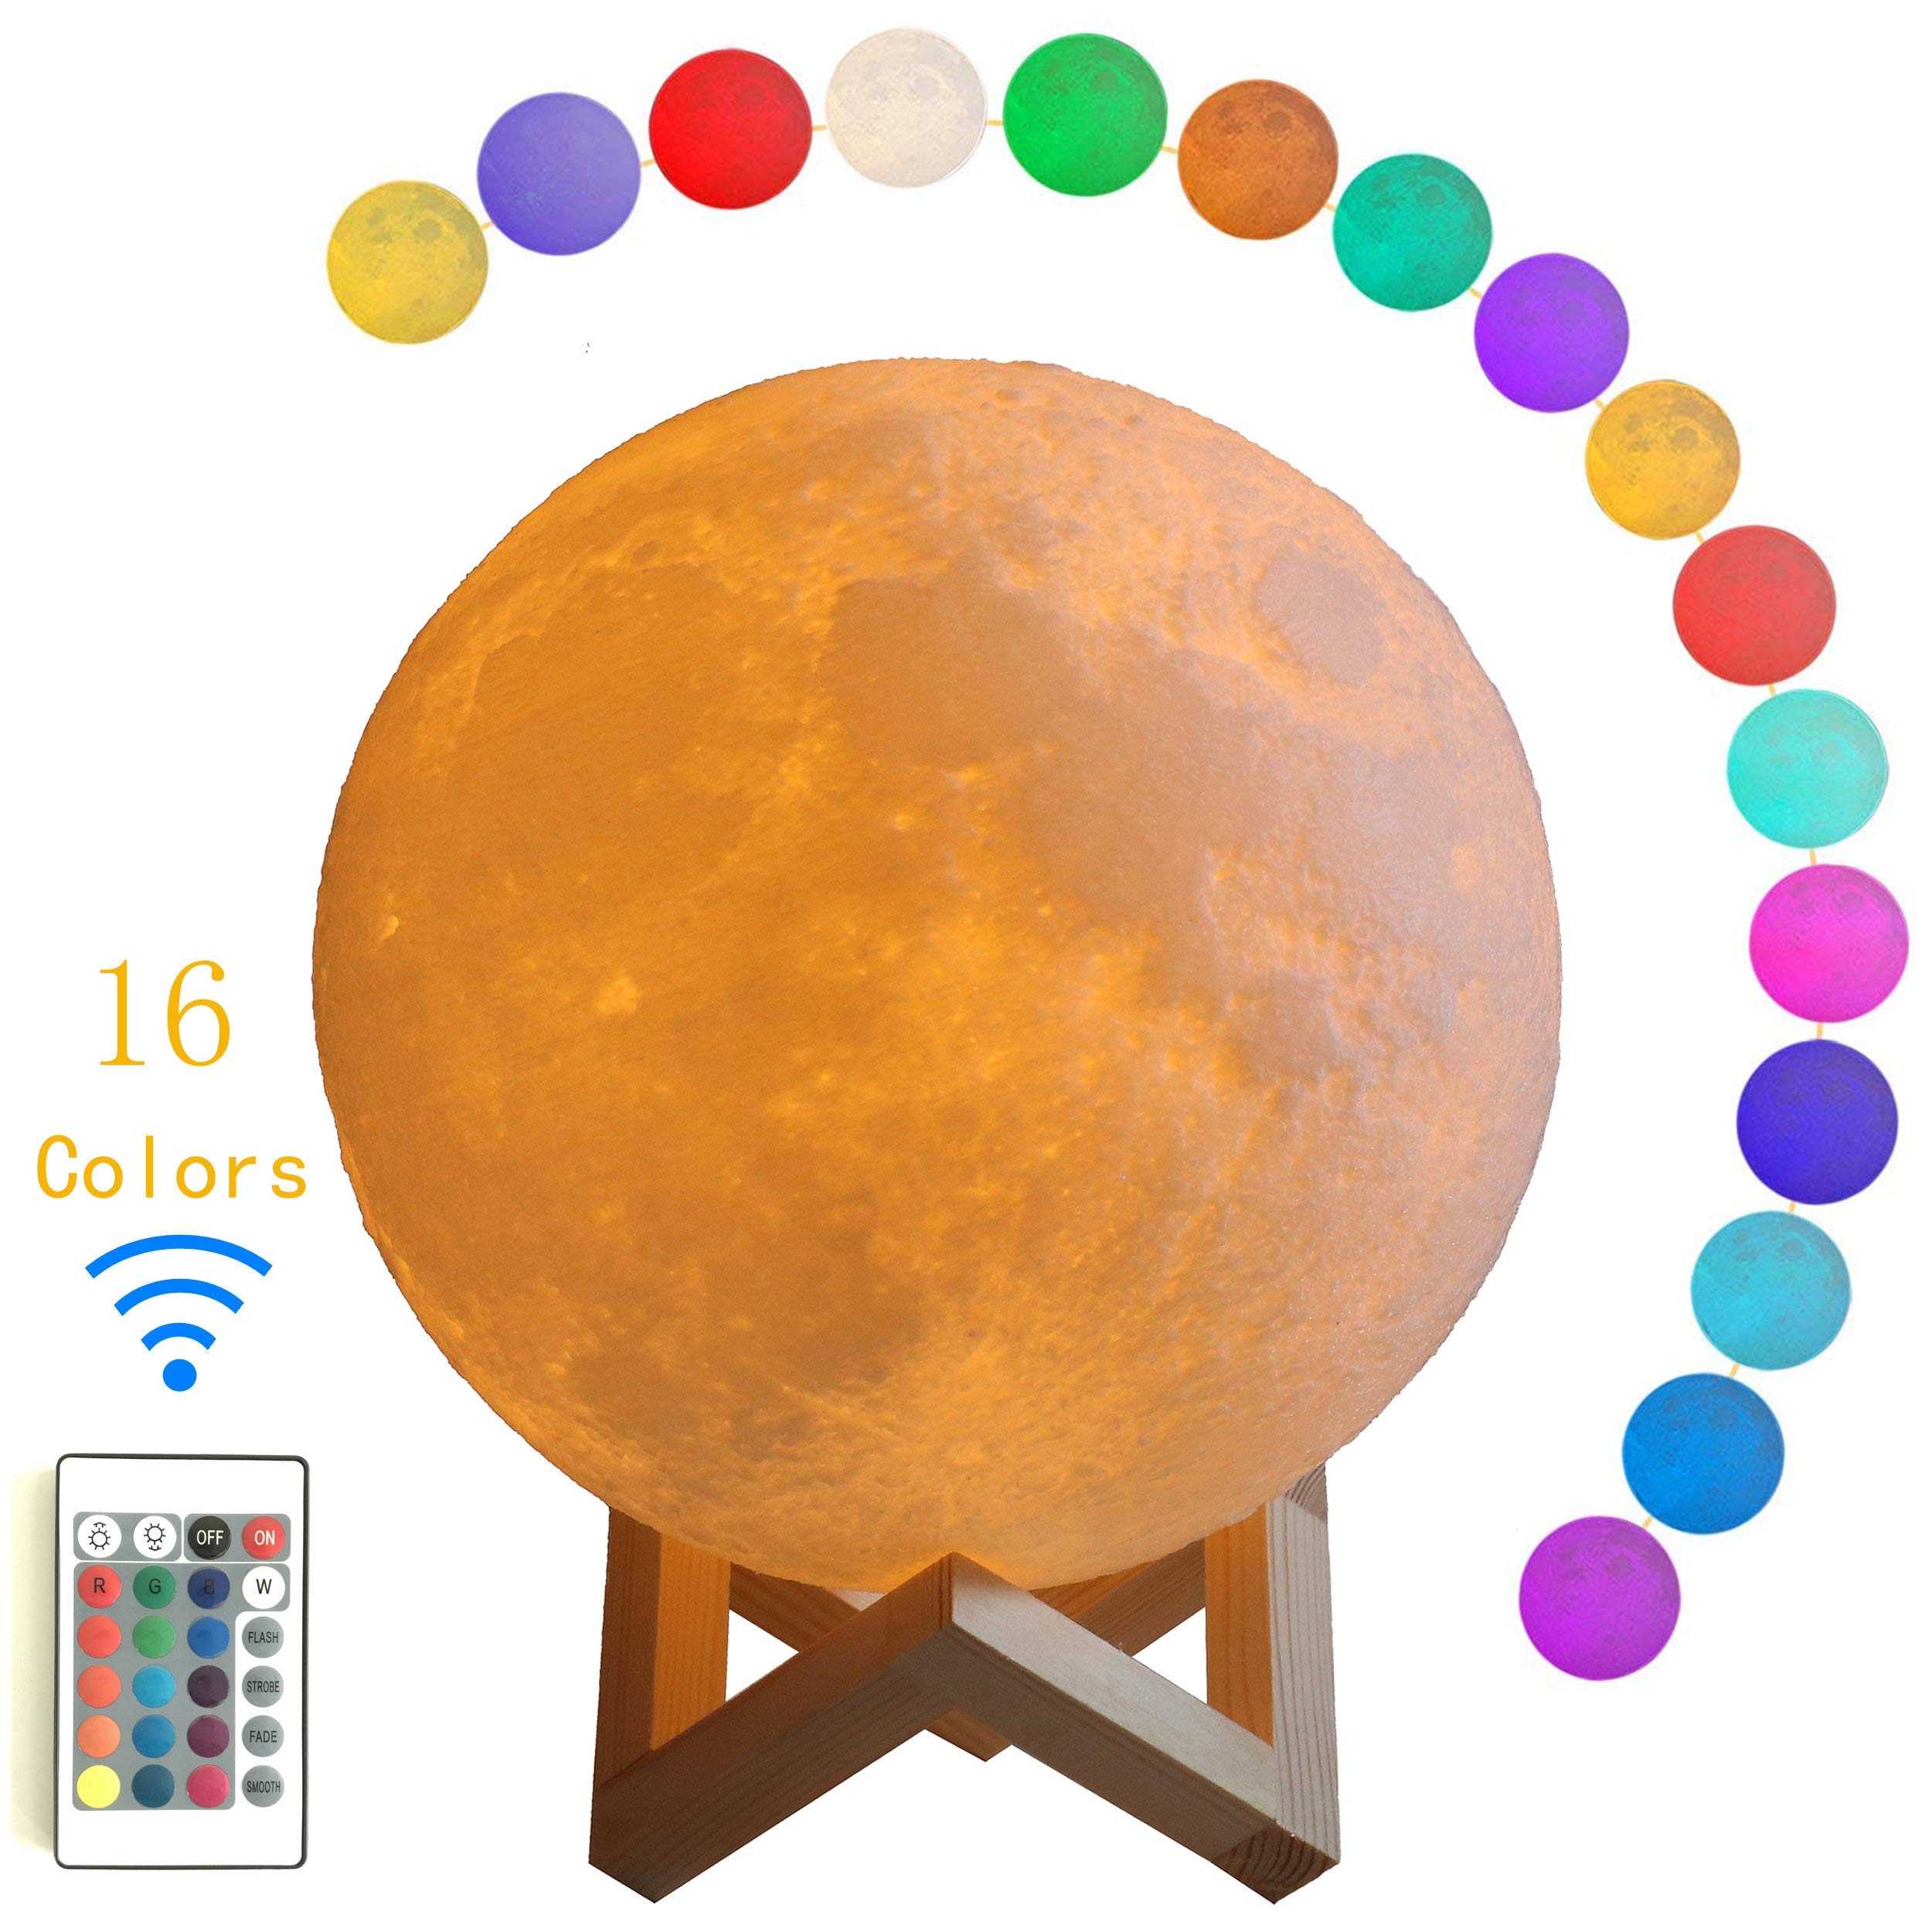 Eleven Direction Moon Lamp,3D Printing Lamp 7.9 Inch Glowing Ball Sleeping lamp Remote Brightness USB Rechargeable Change 16 Colors Moon Light for Kids Room, Birthday, Bedside Decorative Lights